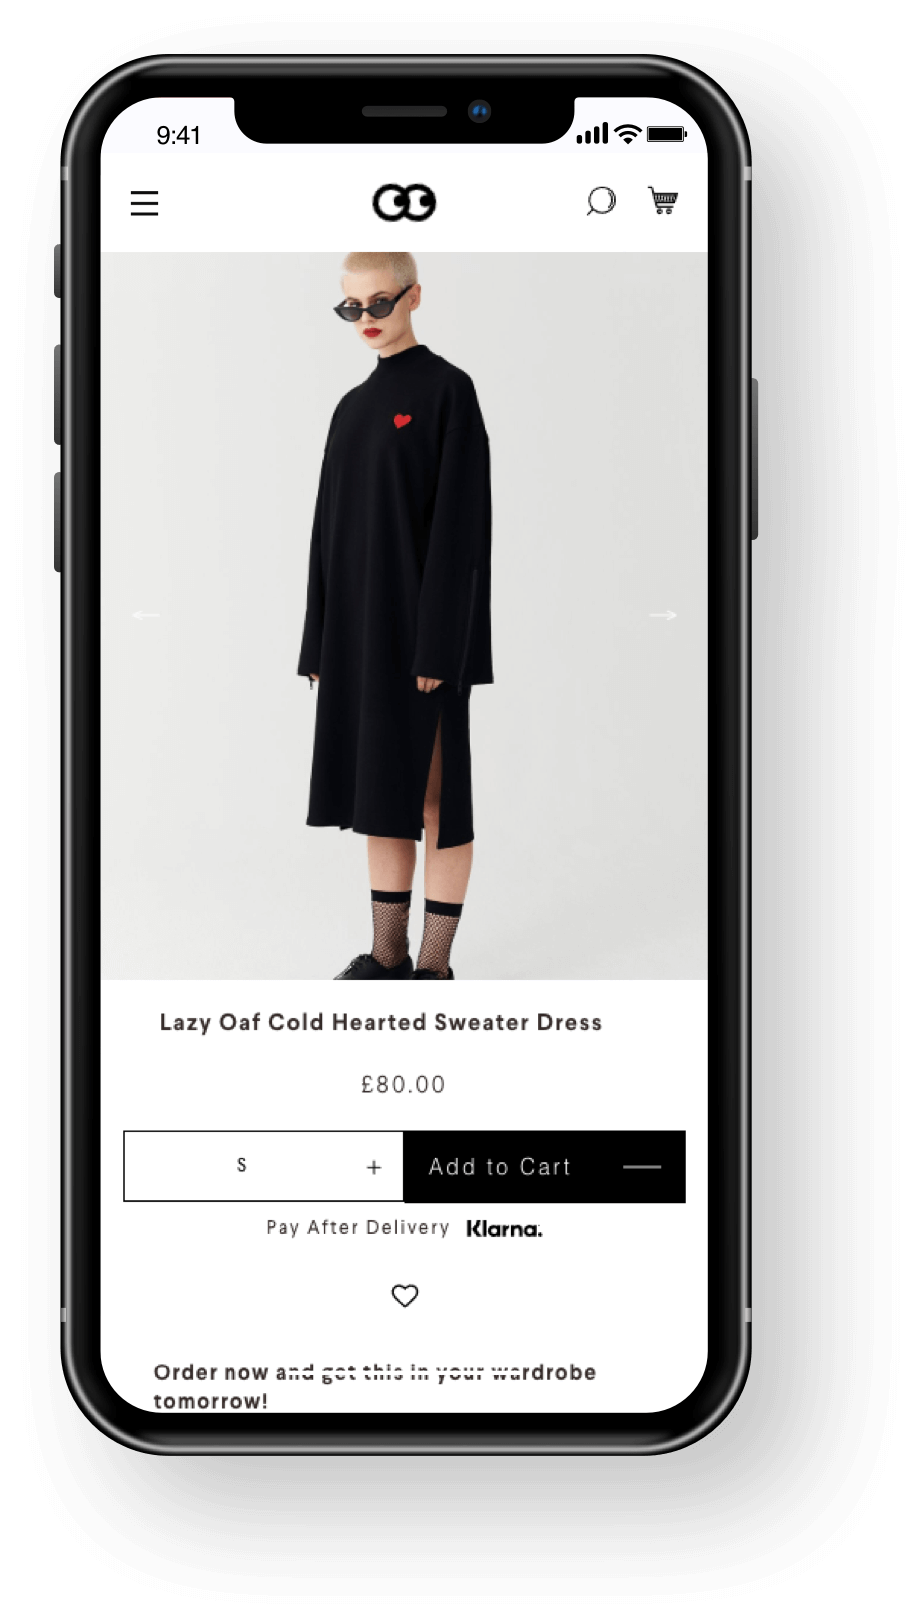 Lazy Oaf Shopify Product Page